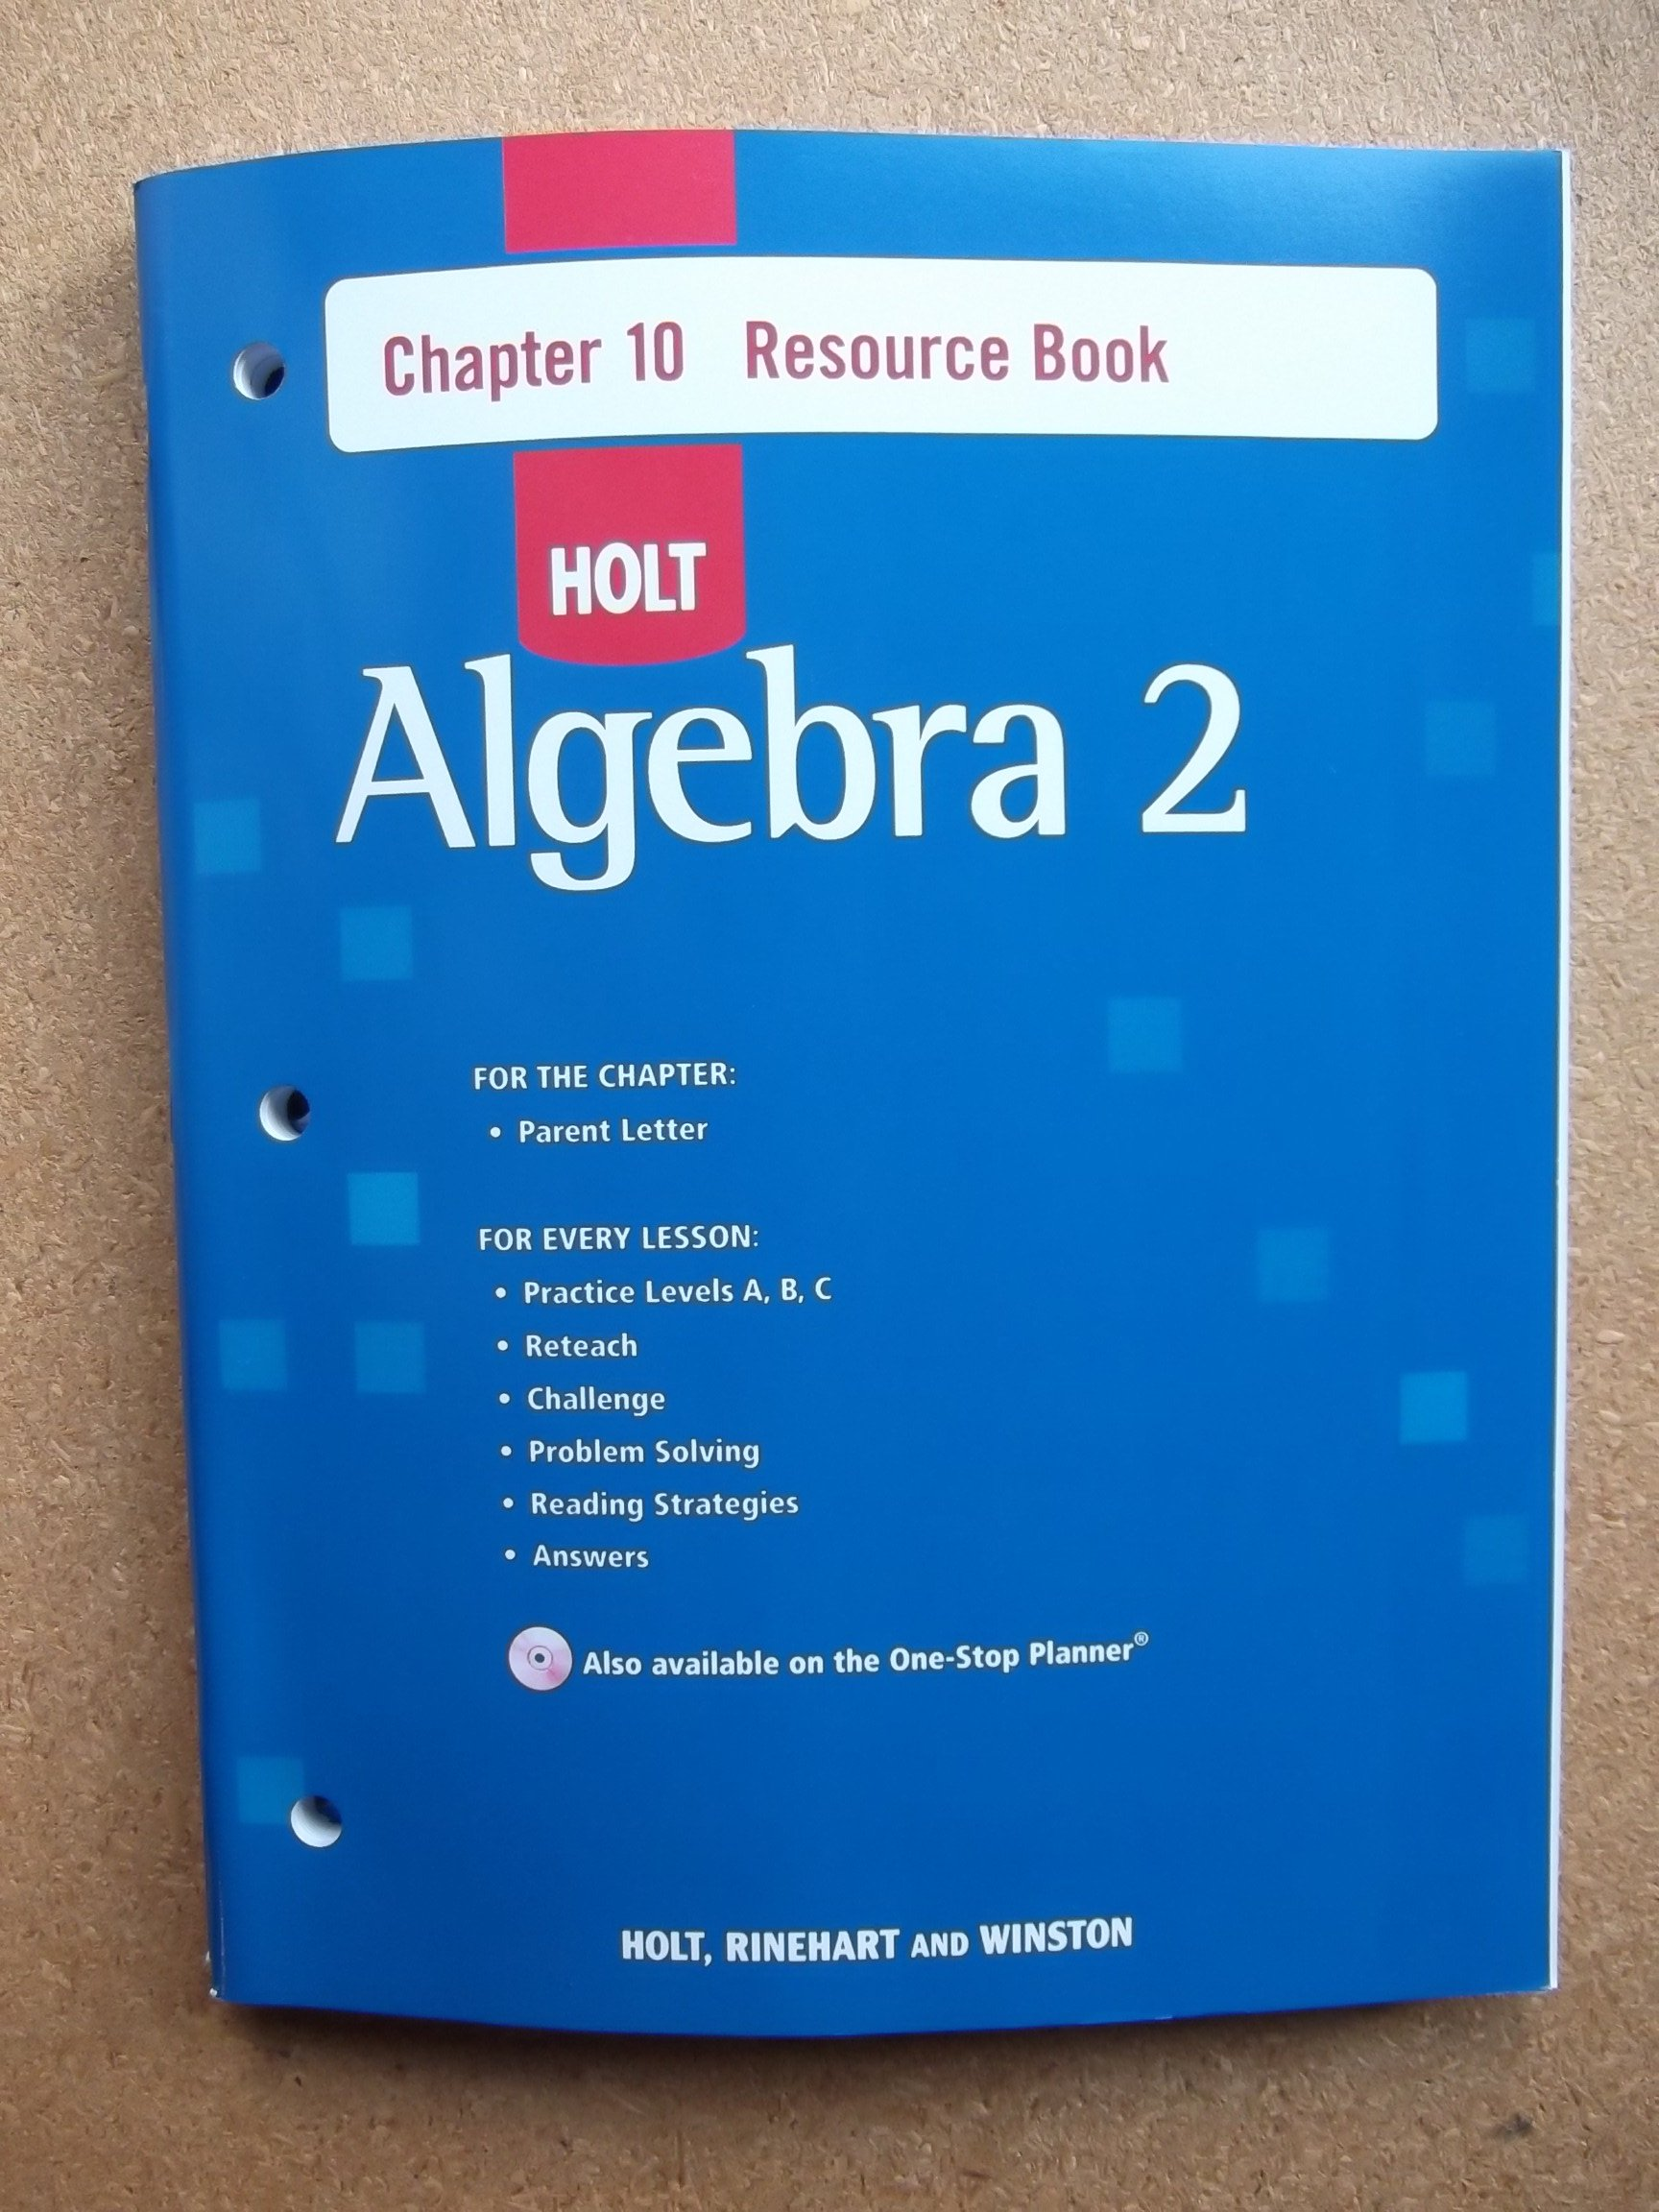 Buy Holt Algebra 2 Resource Book With Answers Chapter 10